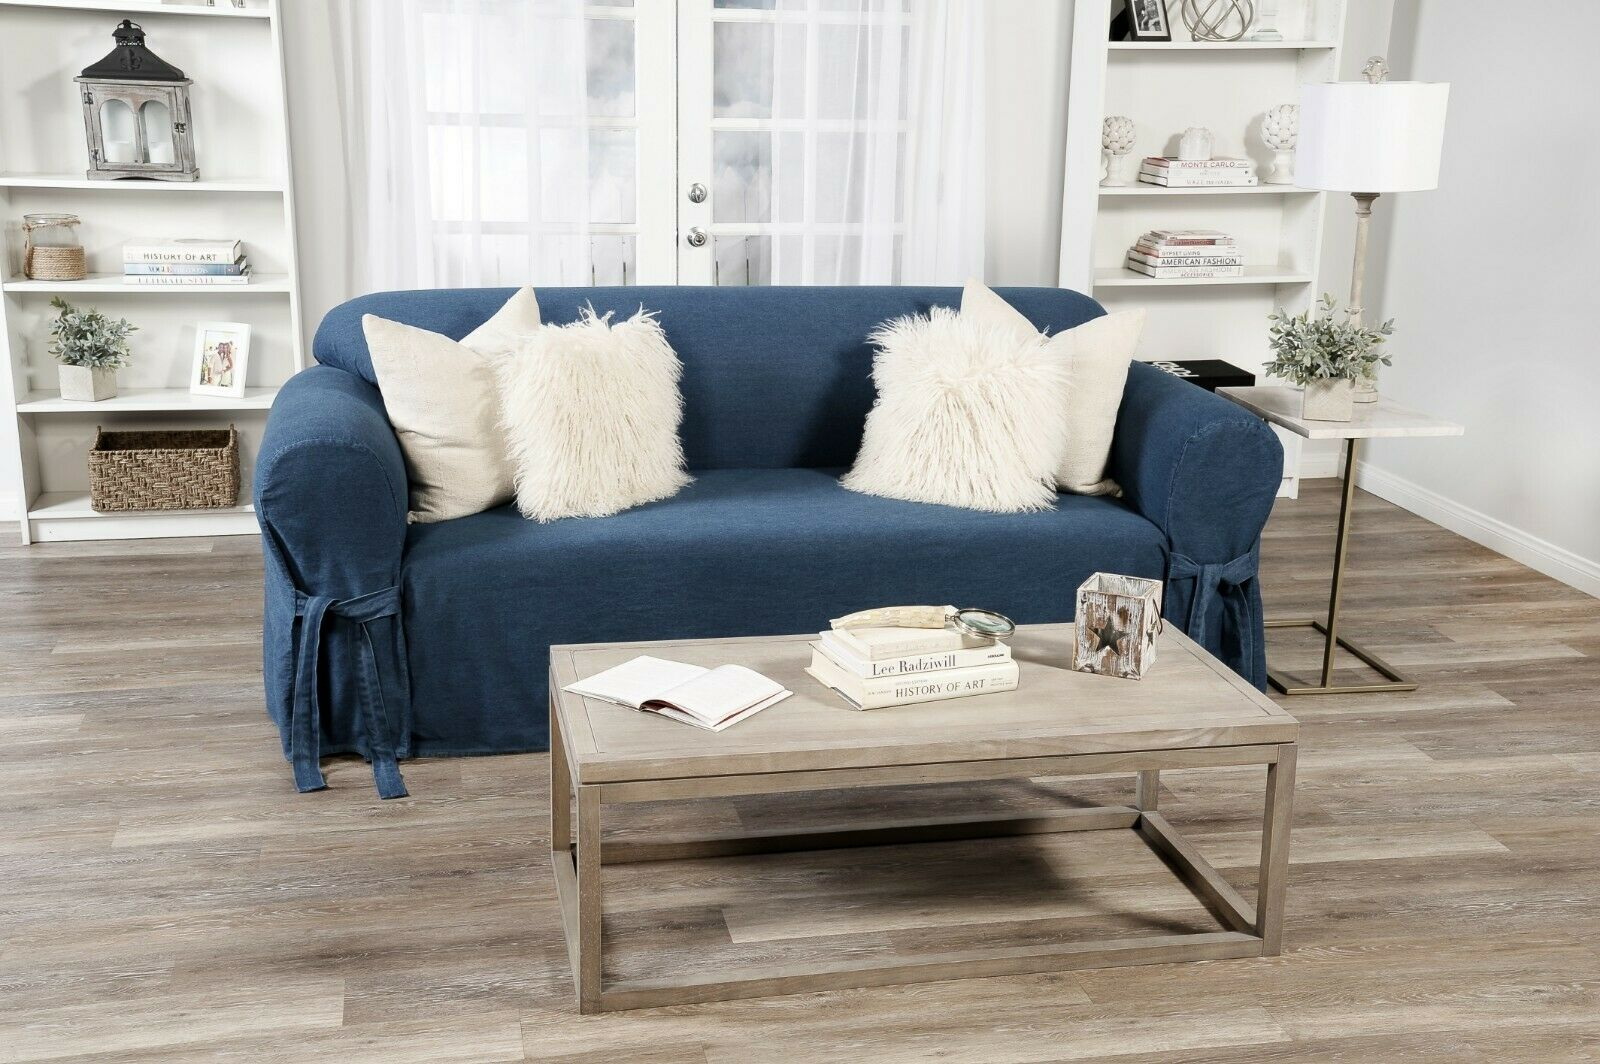 Picture of: All Cotton Blue Denim 2 Piece Sofa Loveseat Chair Slipcover 2 Pillows For Sale Online Ebay